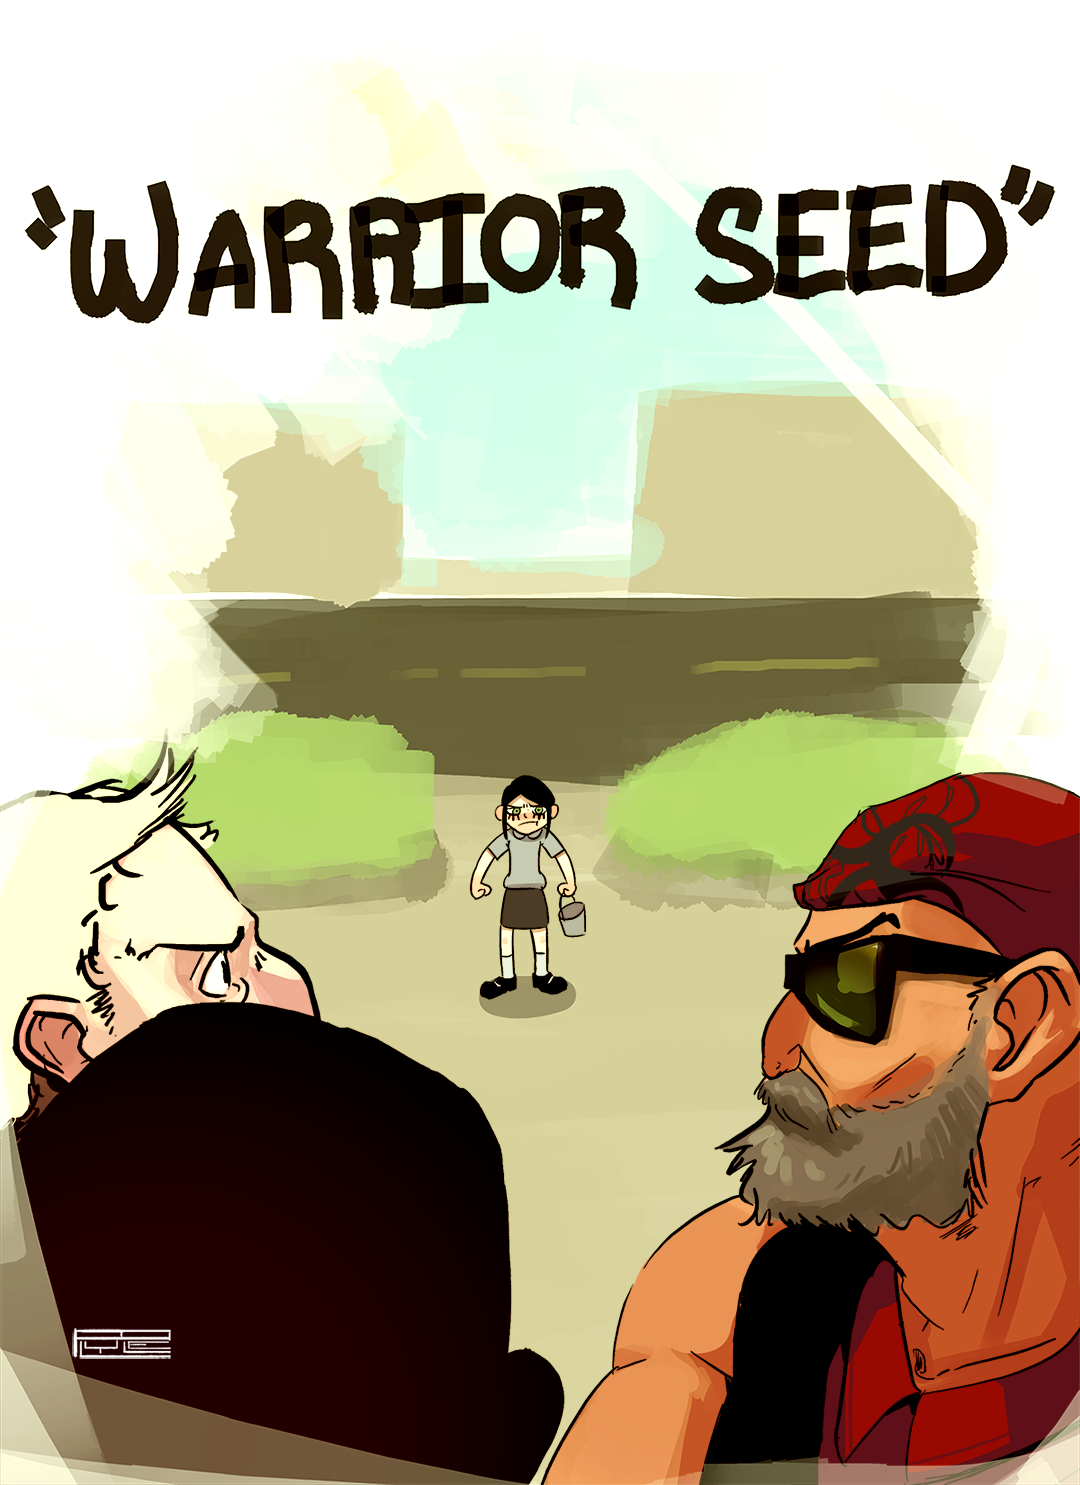 Warrior Seed porn comics Anal Sex, Blowjob, Creampie, Cum Shots, Cum Swallow, Domination, Double Penetration, Group Sex, Lolicon, Masturbation, Oral sex, Straight, Submission, X-Ray